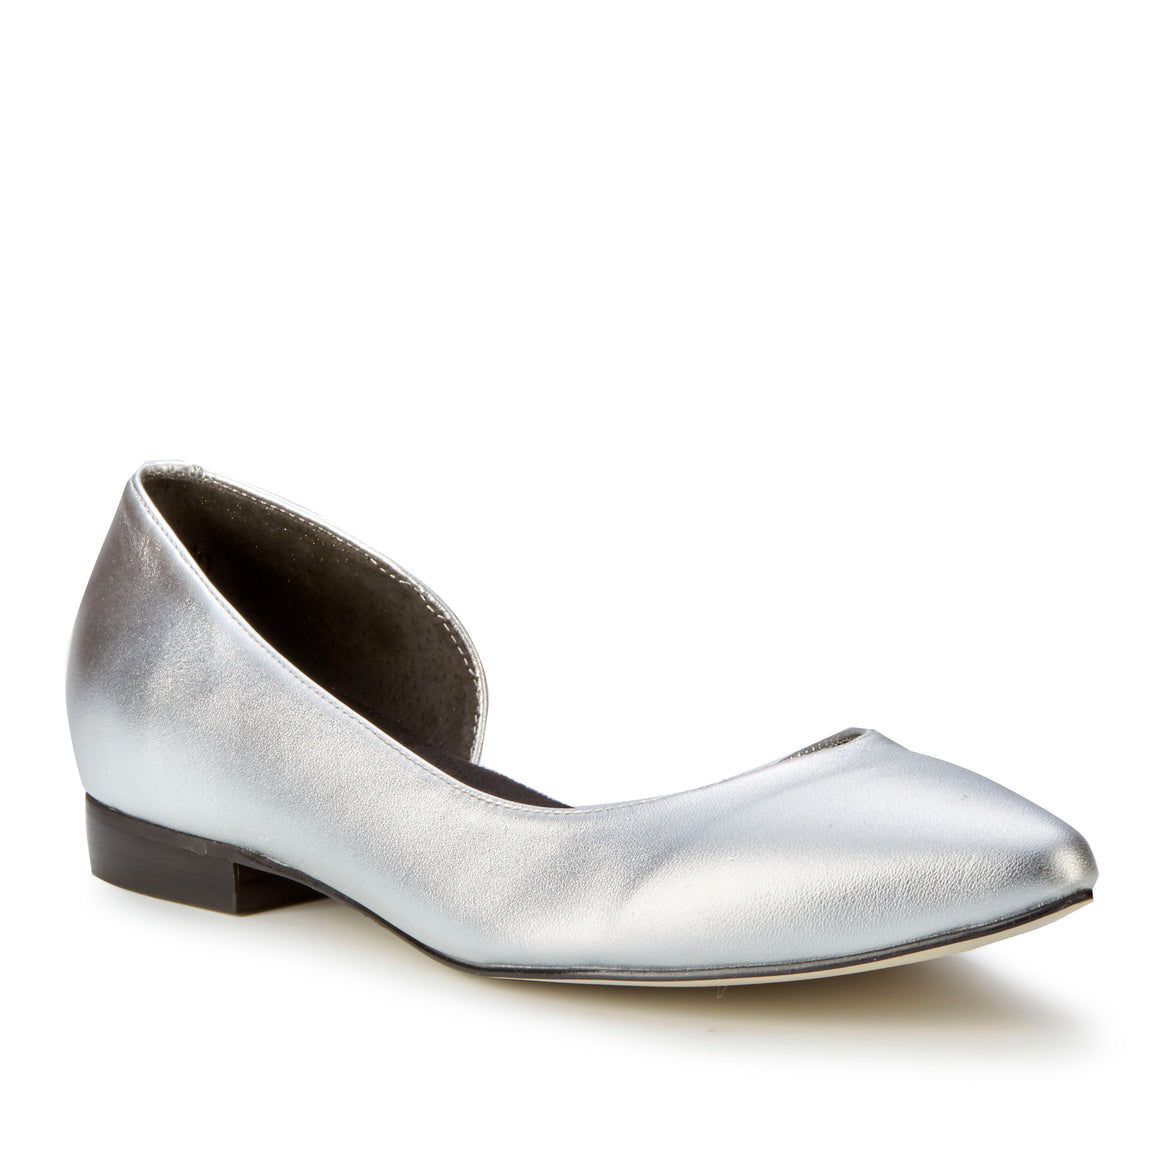 Women's Comfort Flat- Raya in Bright Silver Soft Metallic BOUTIQUE COLLECTION